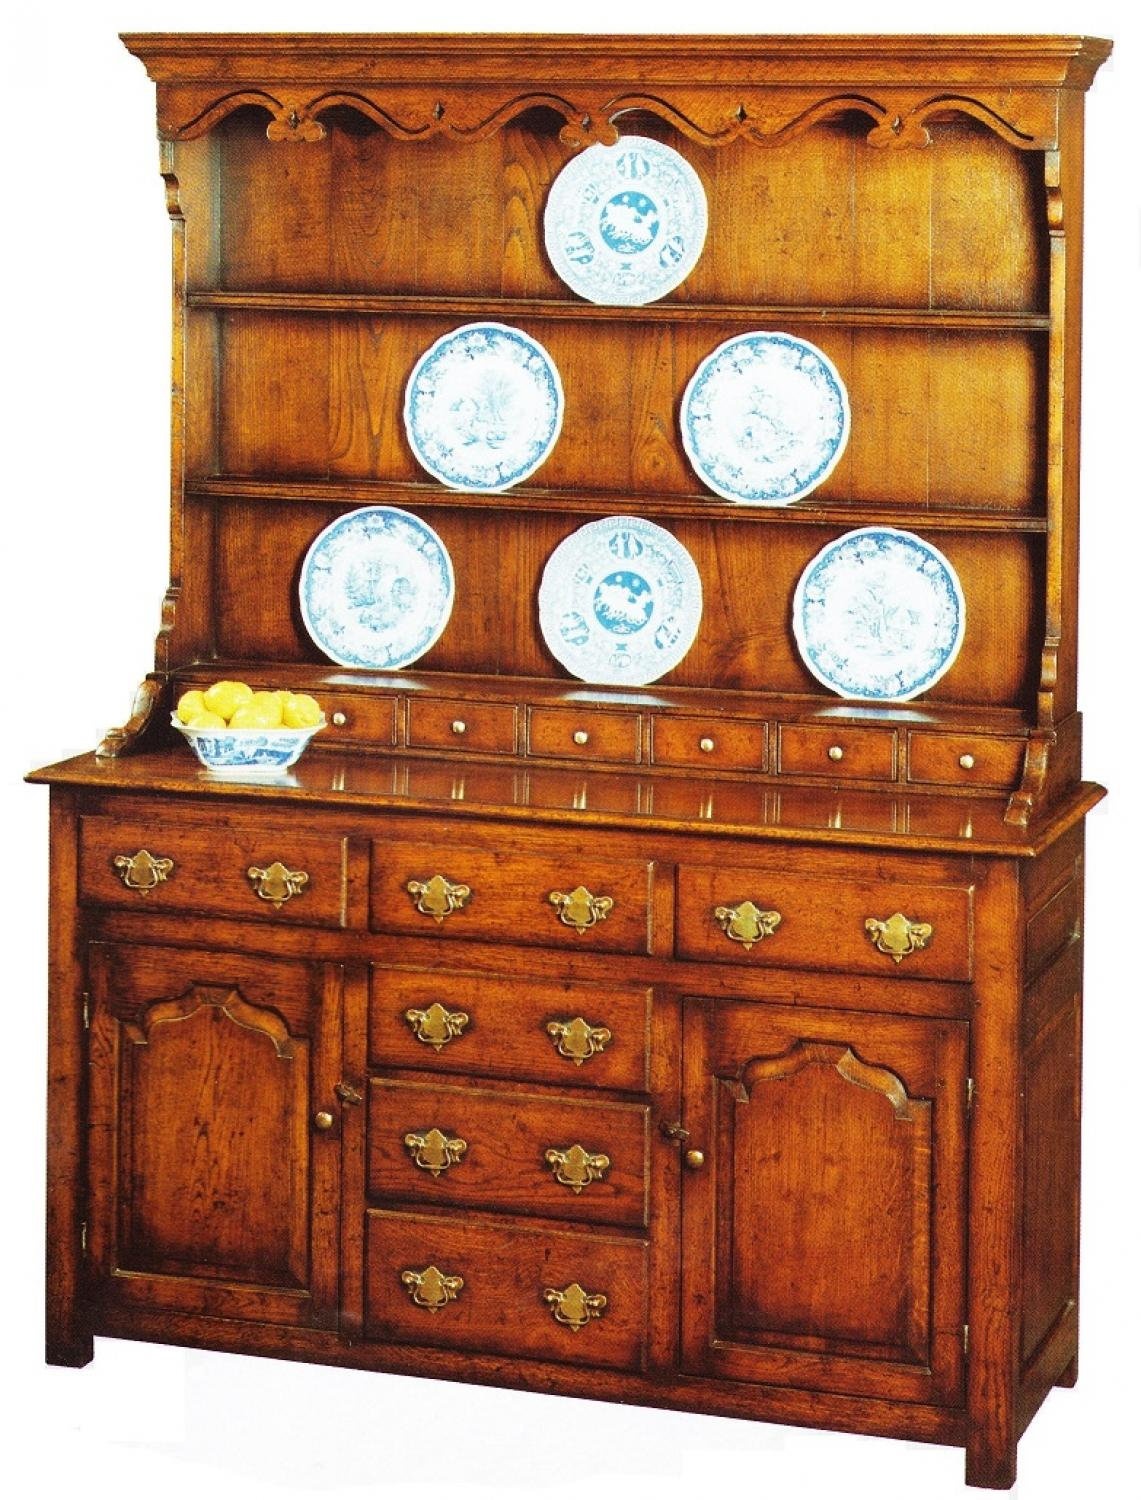 Oak Welsh Dresser and Rack - Flagship